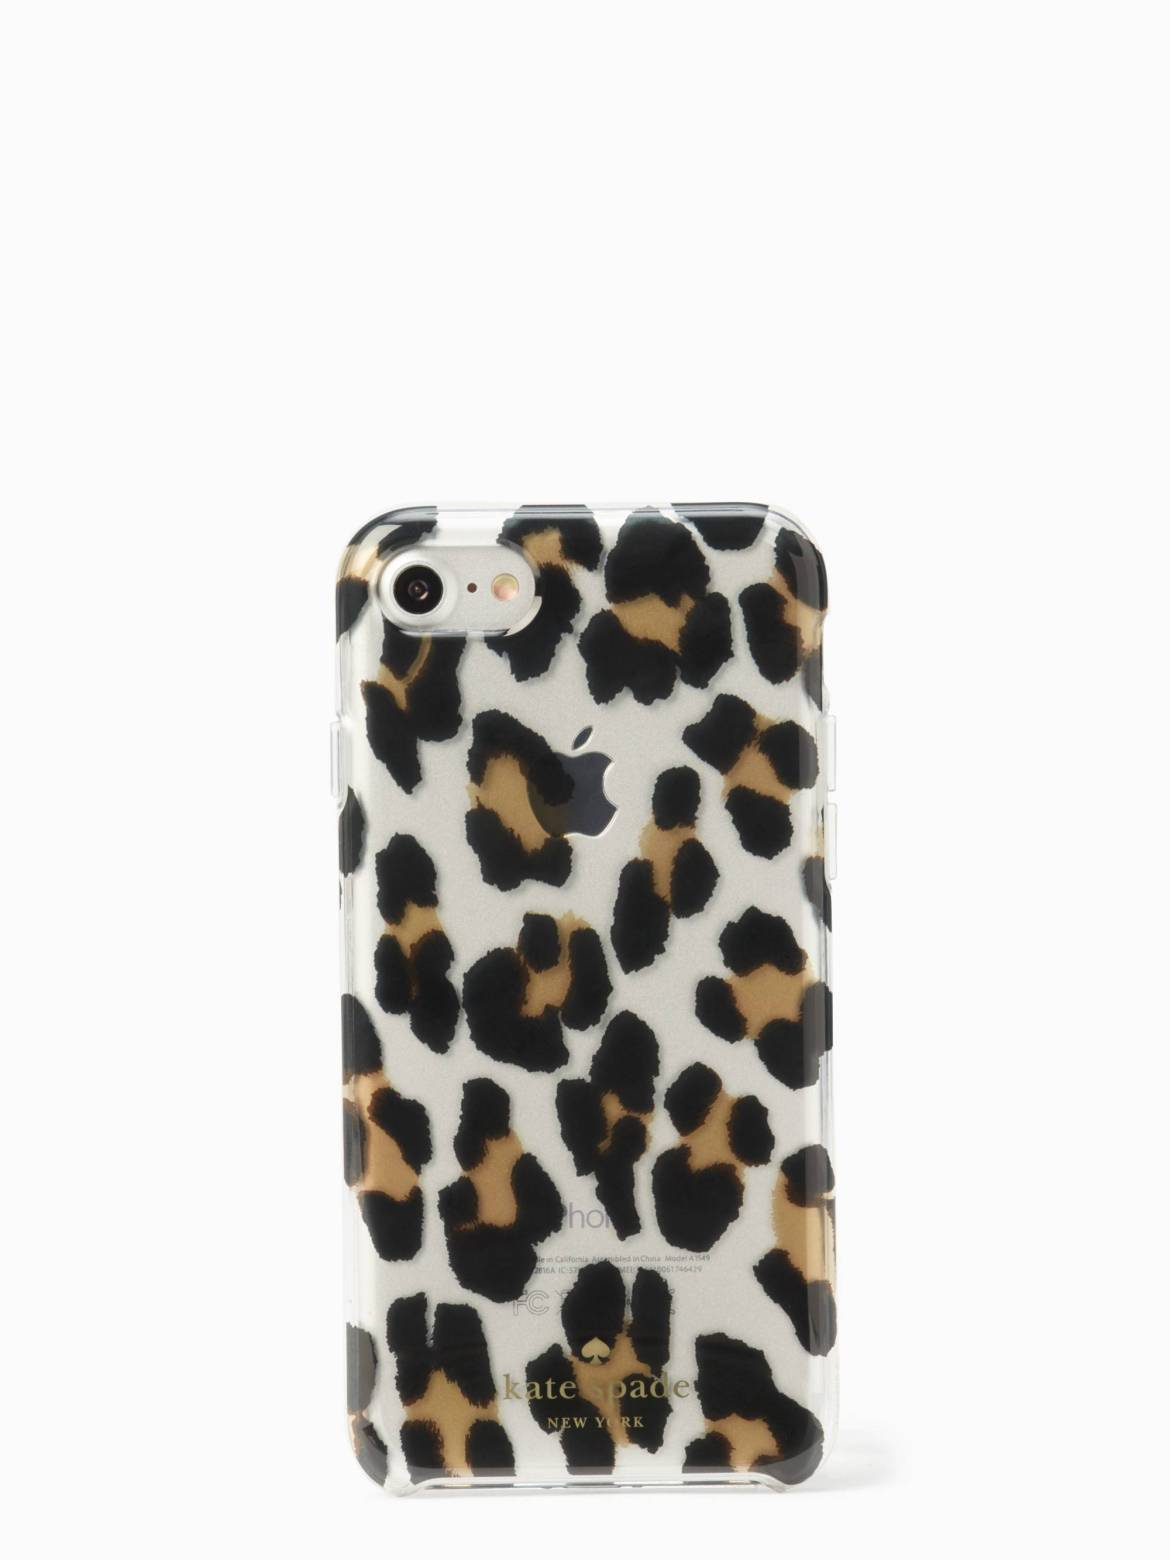 These phone cases to protect your phone are not only durable they are cute too!